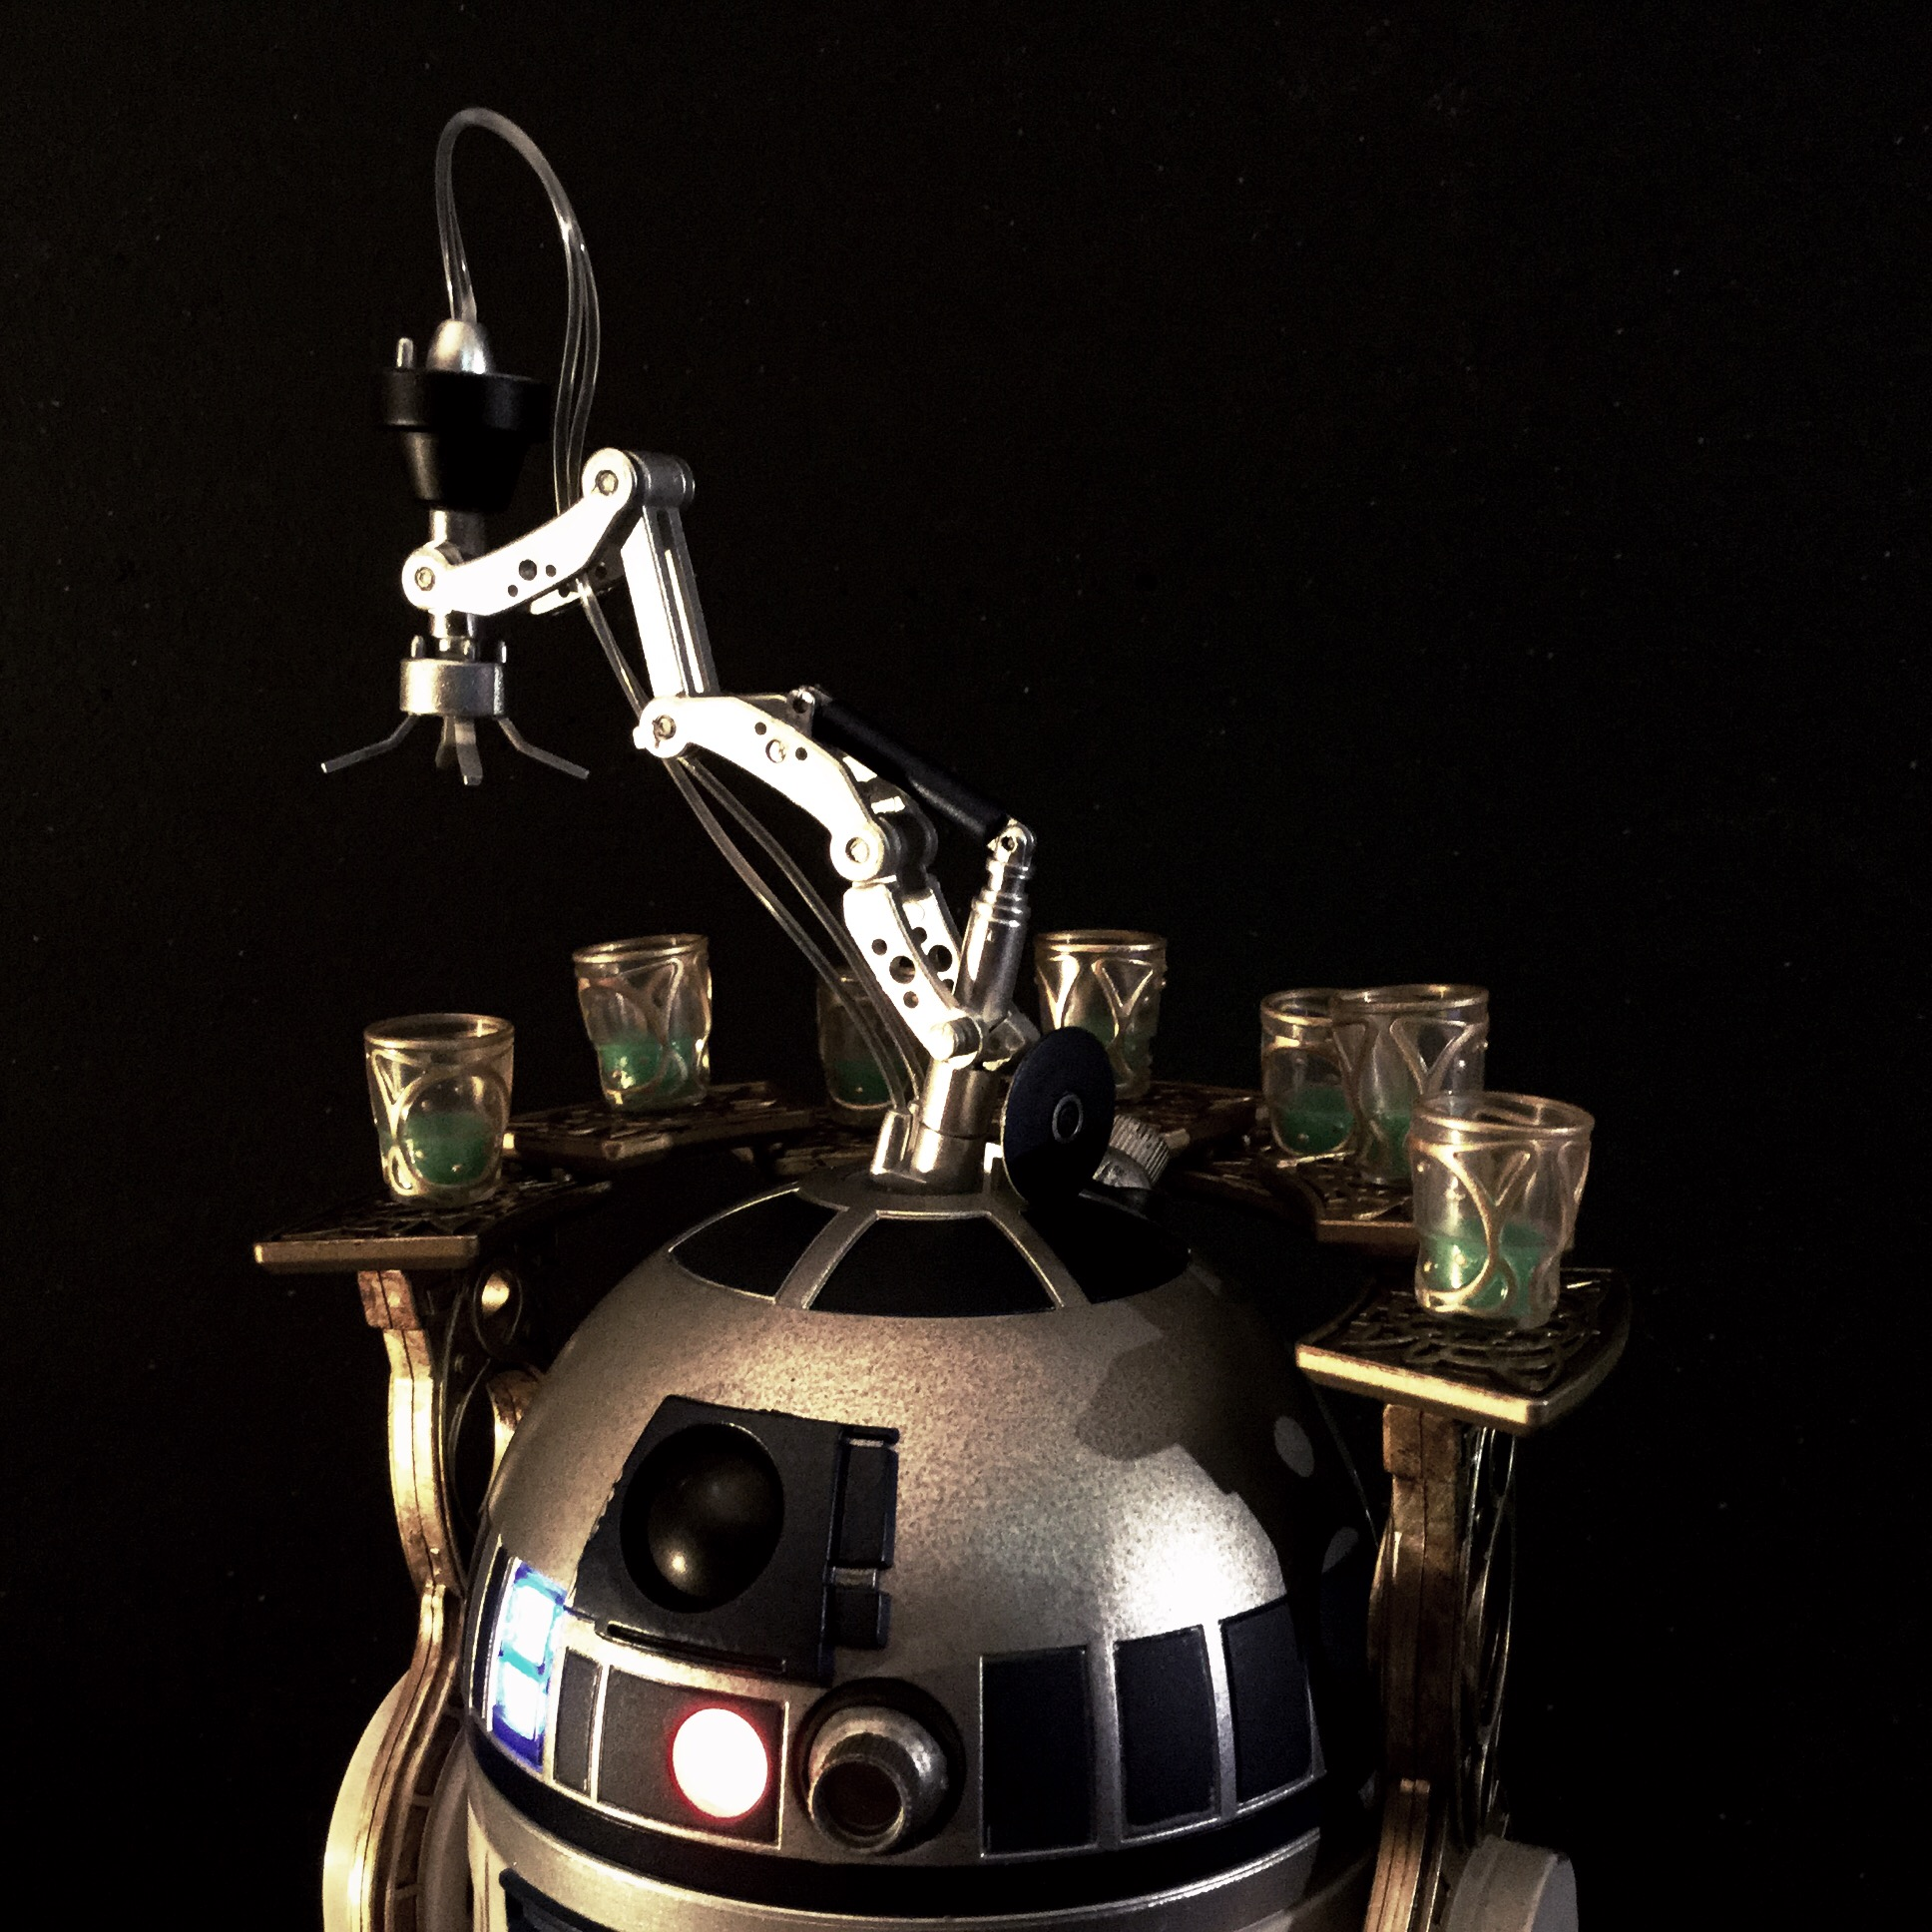 [REVIEW] Star Wars : R2-D2 Deluxe (Sideshow) 15824092963_9b687840f5_o